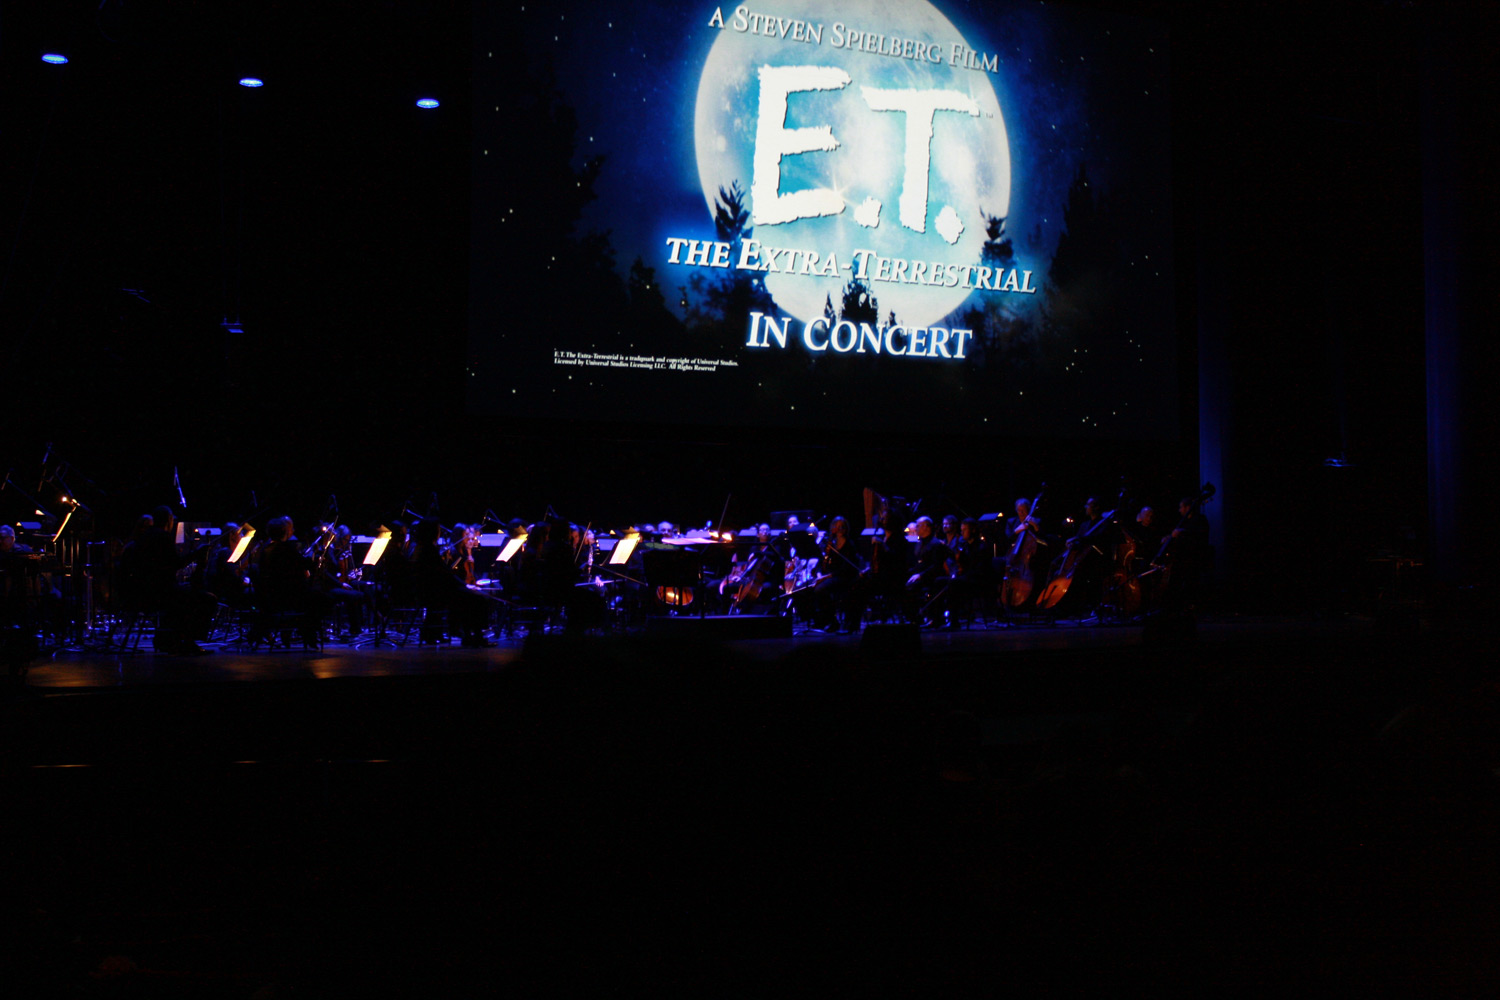 The Winnipeg Symphony Orchestra played in unison with the movie E.T. playing above them on a giant screen.